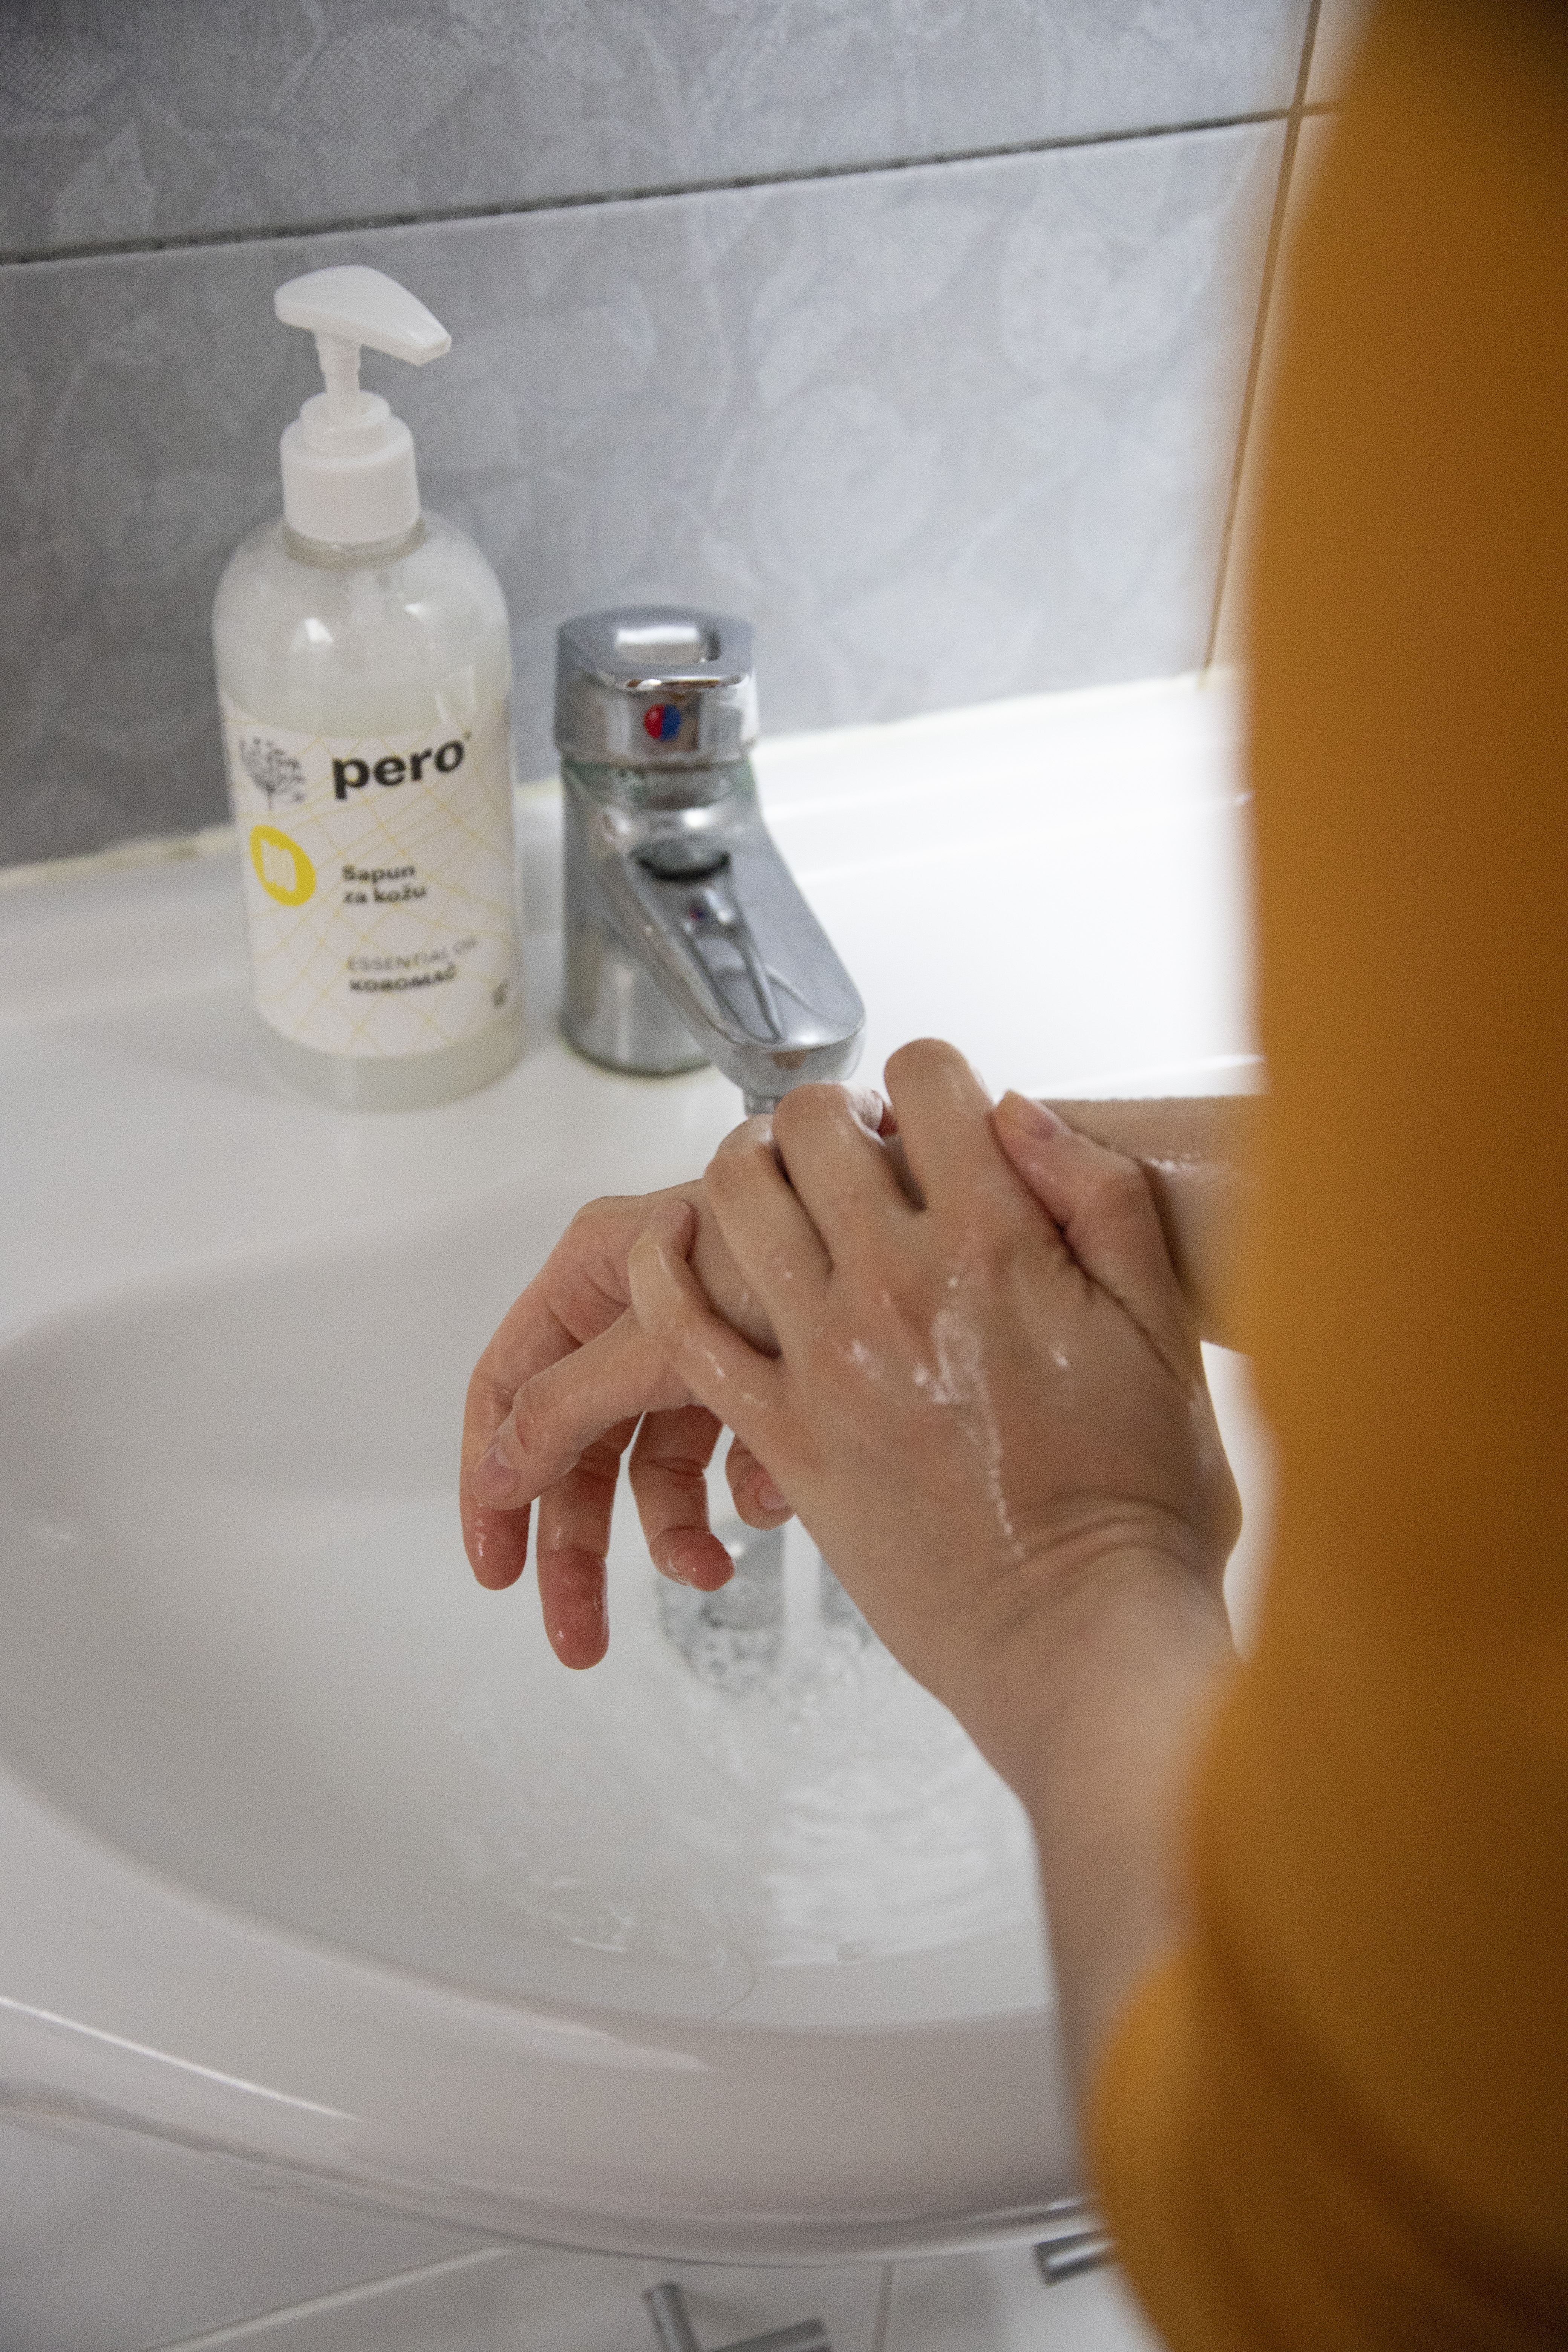 Pero - care soap for the most demanding skin